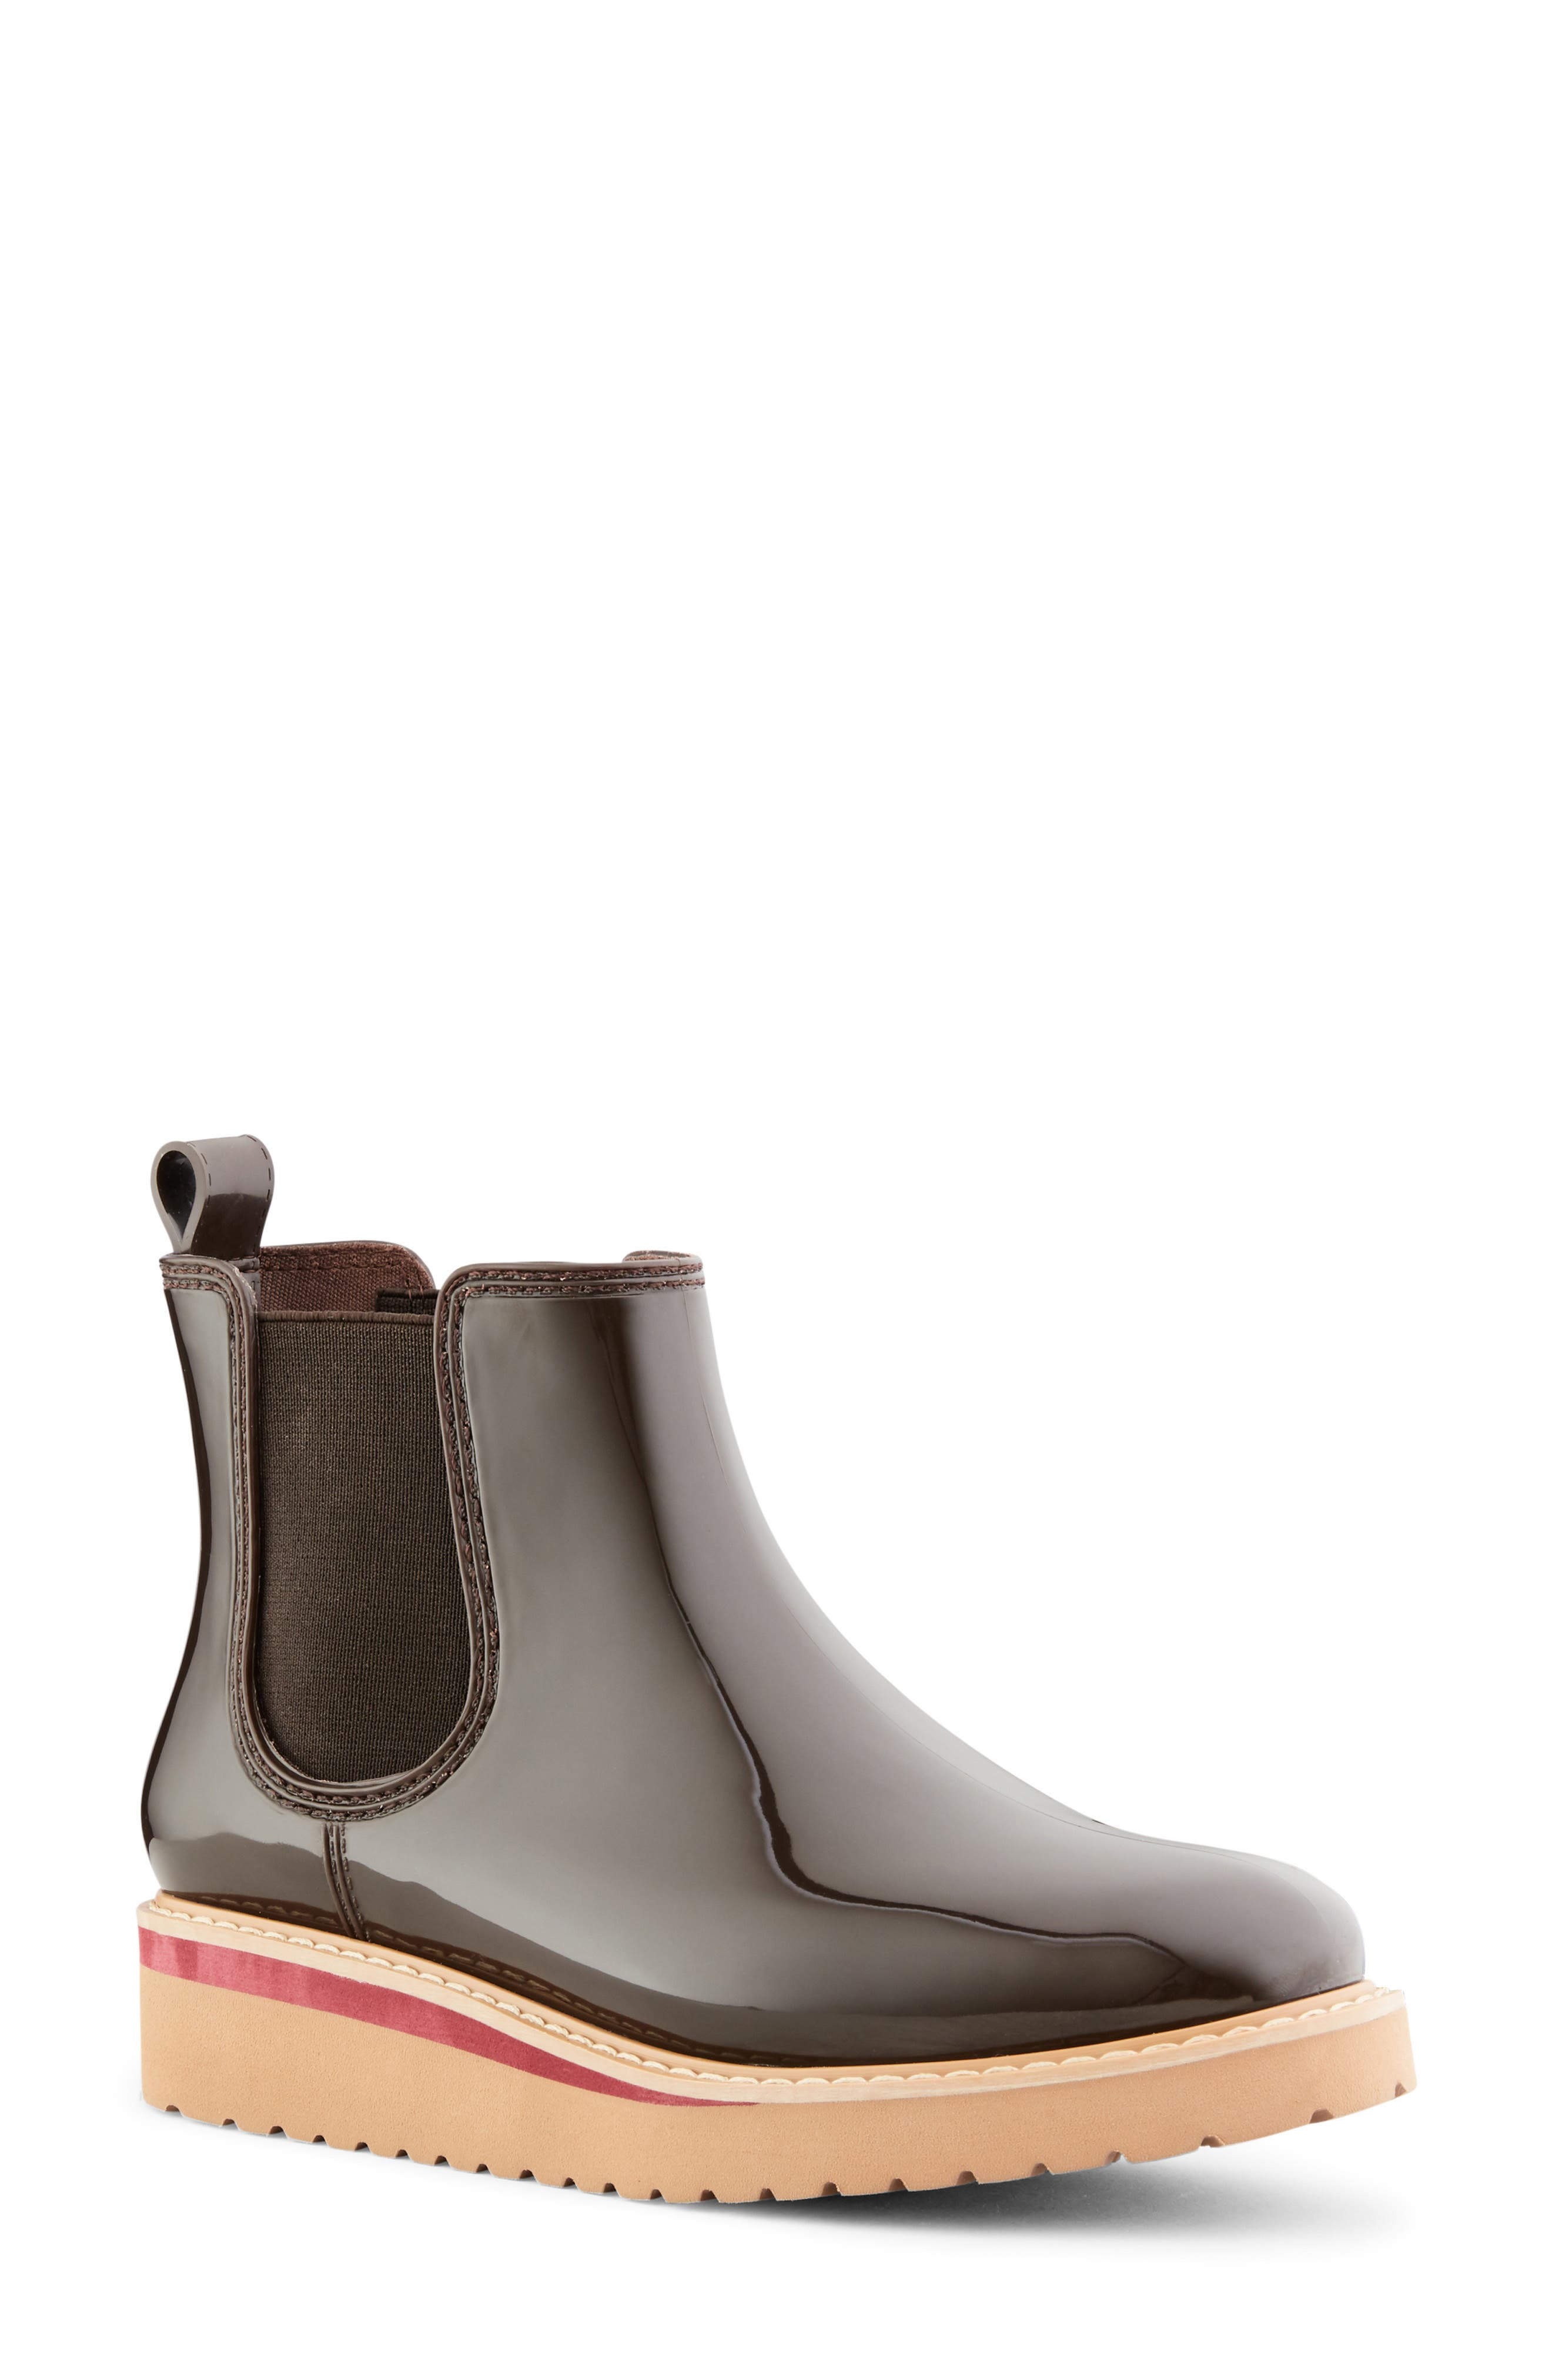 Cougar Kensington Chelsea Rain Boot (Women)